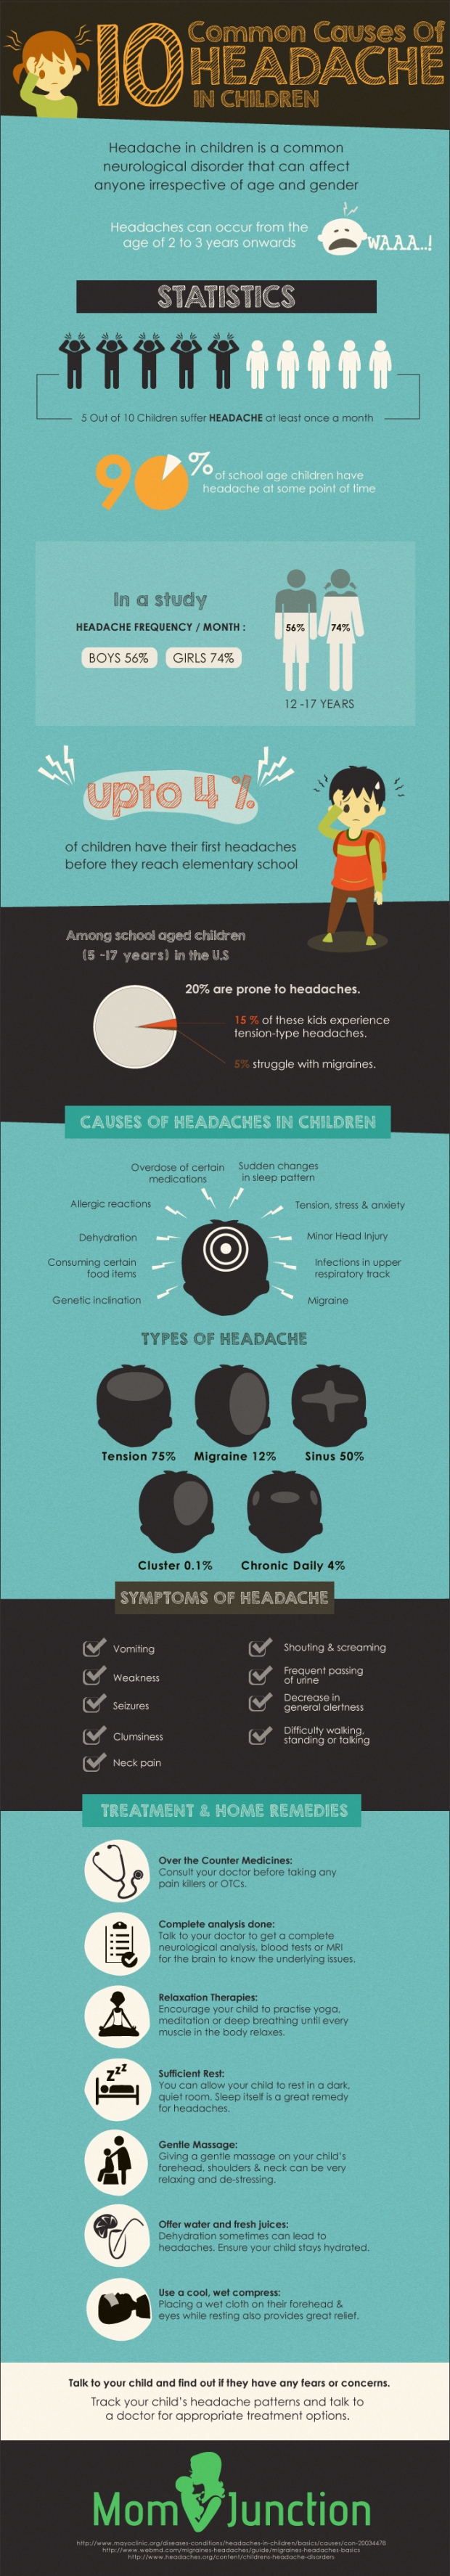 Common-Causes-Of-Headache-In-Children_final